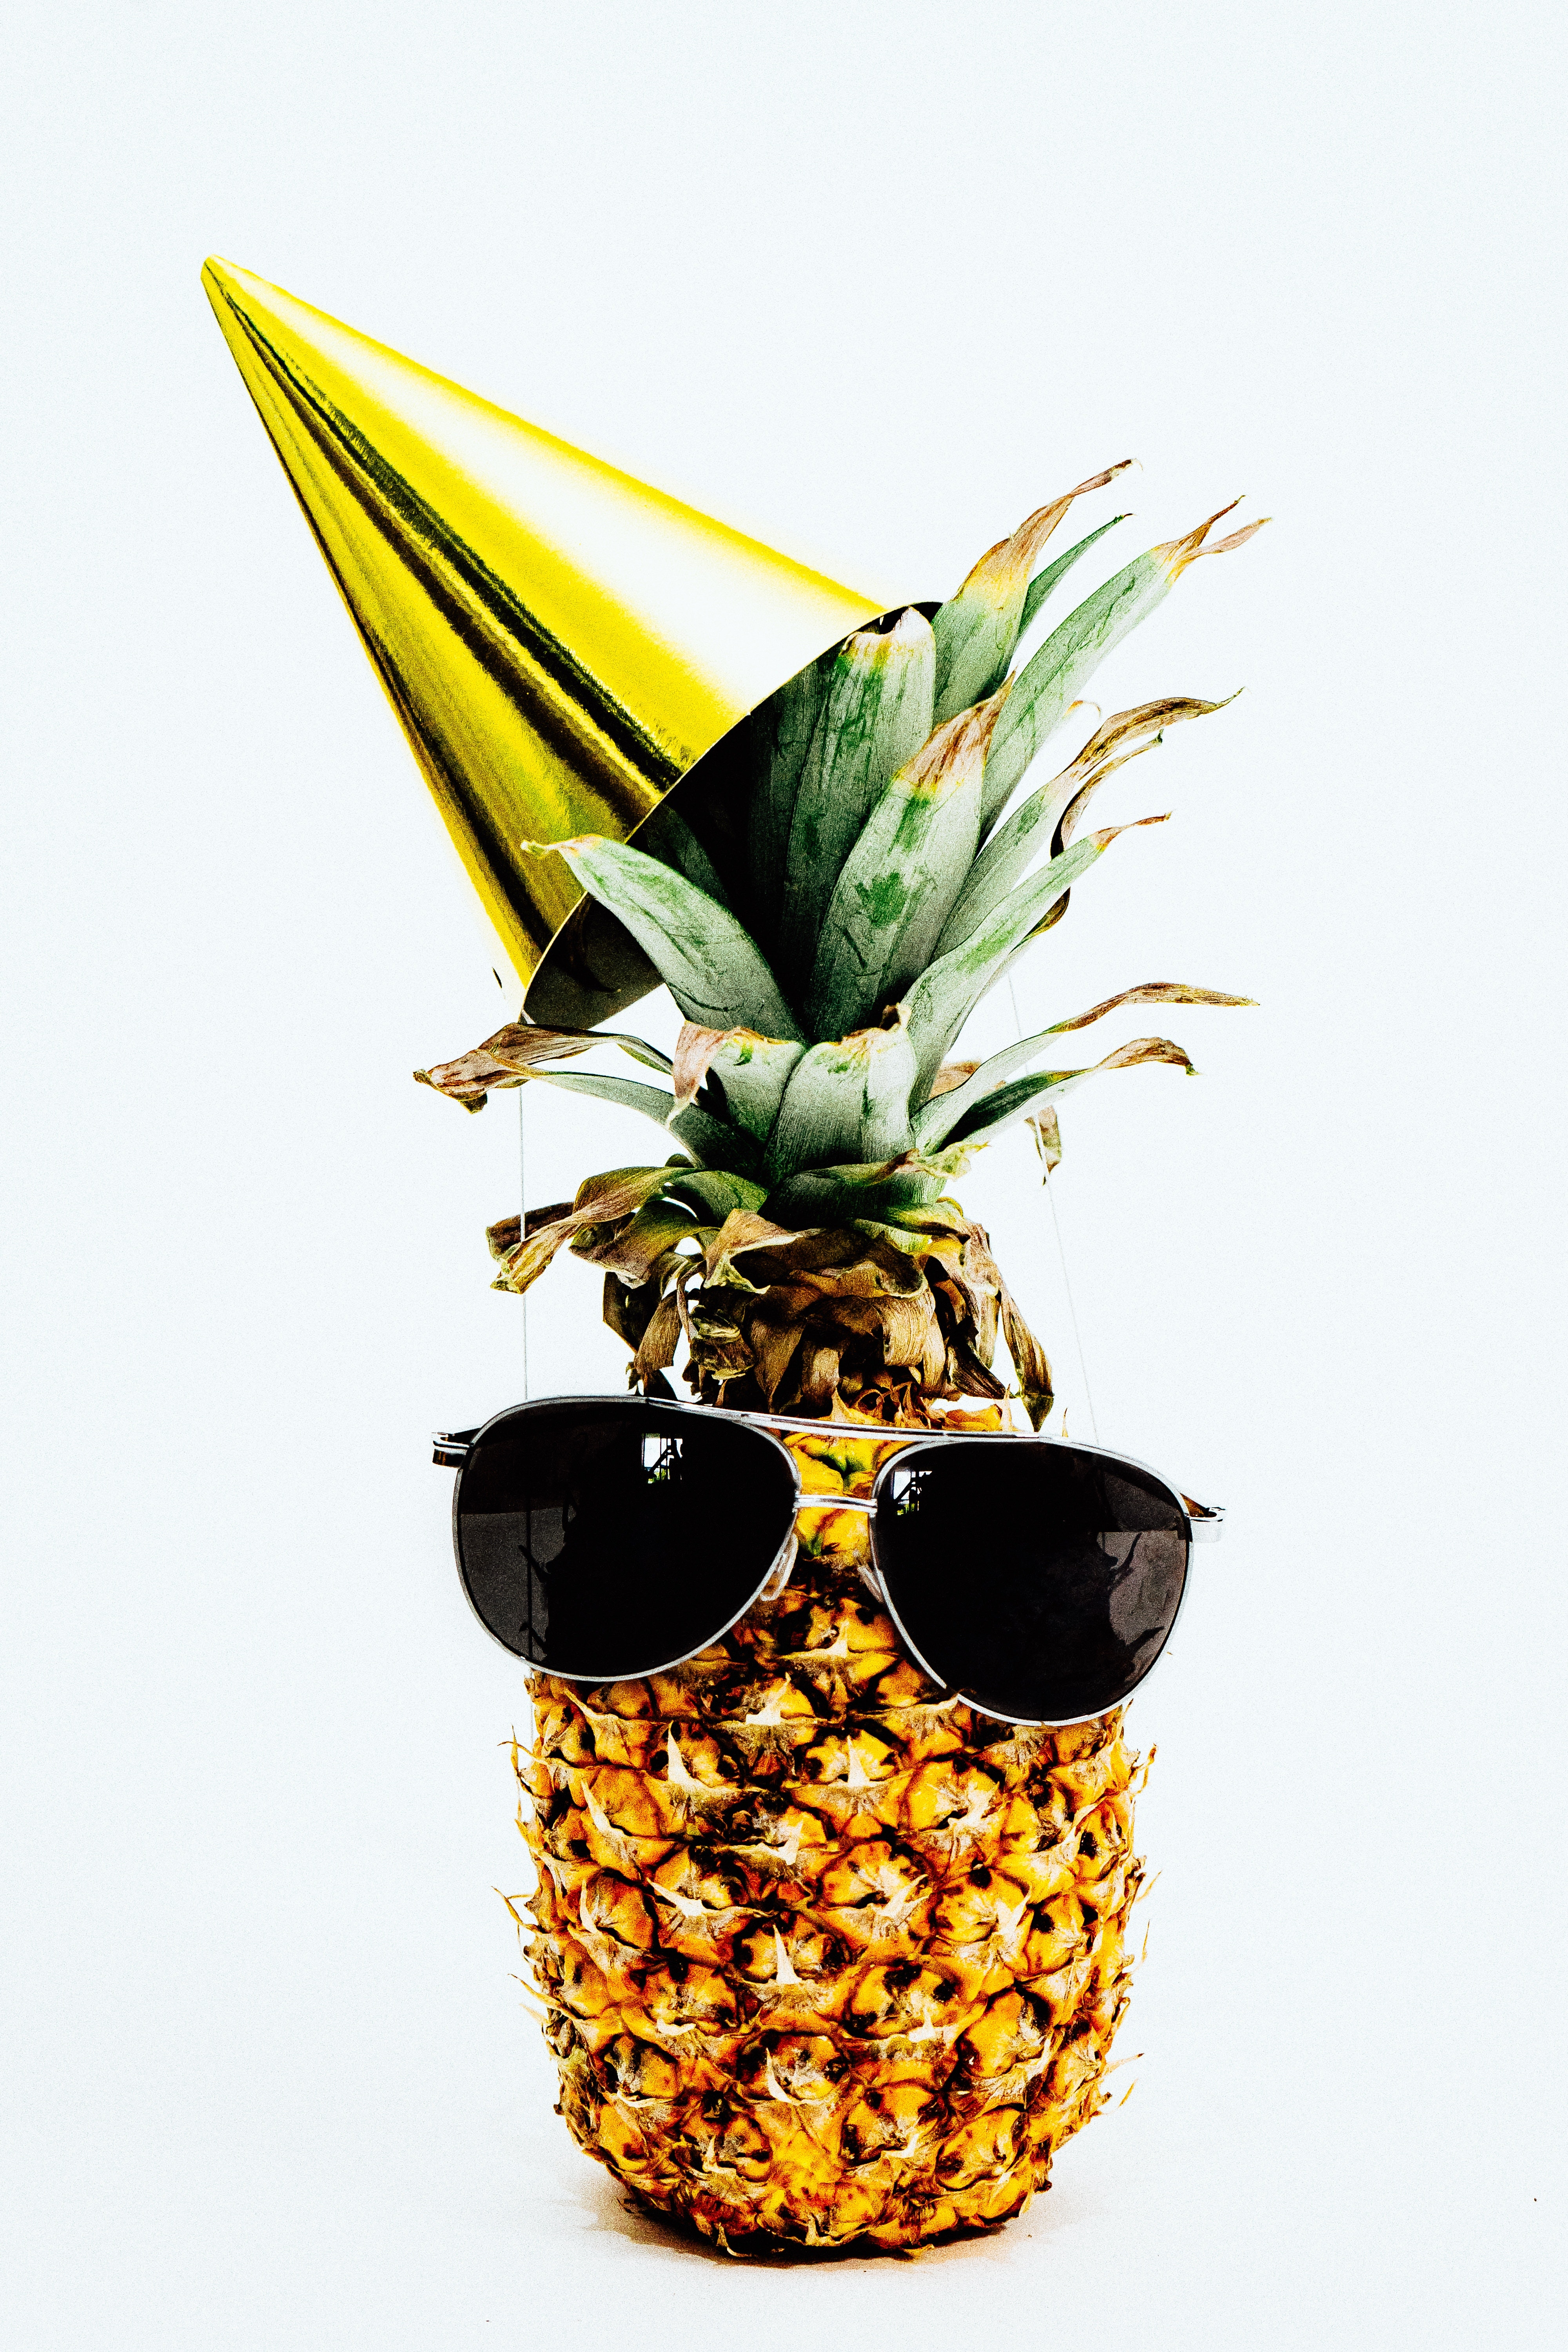 Pineapple is cool.